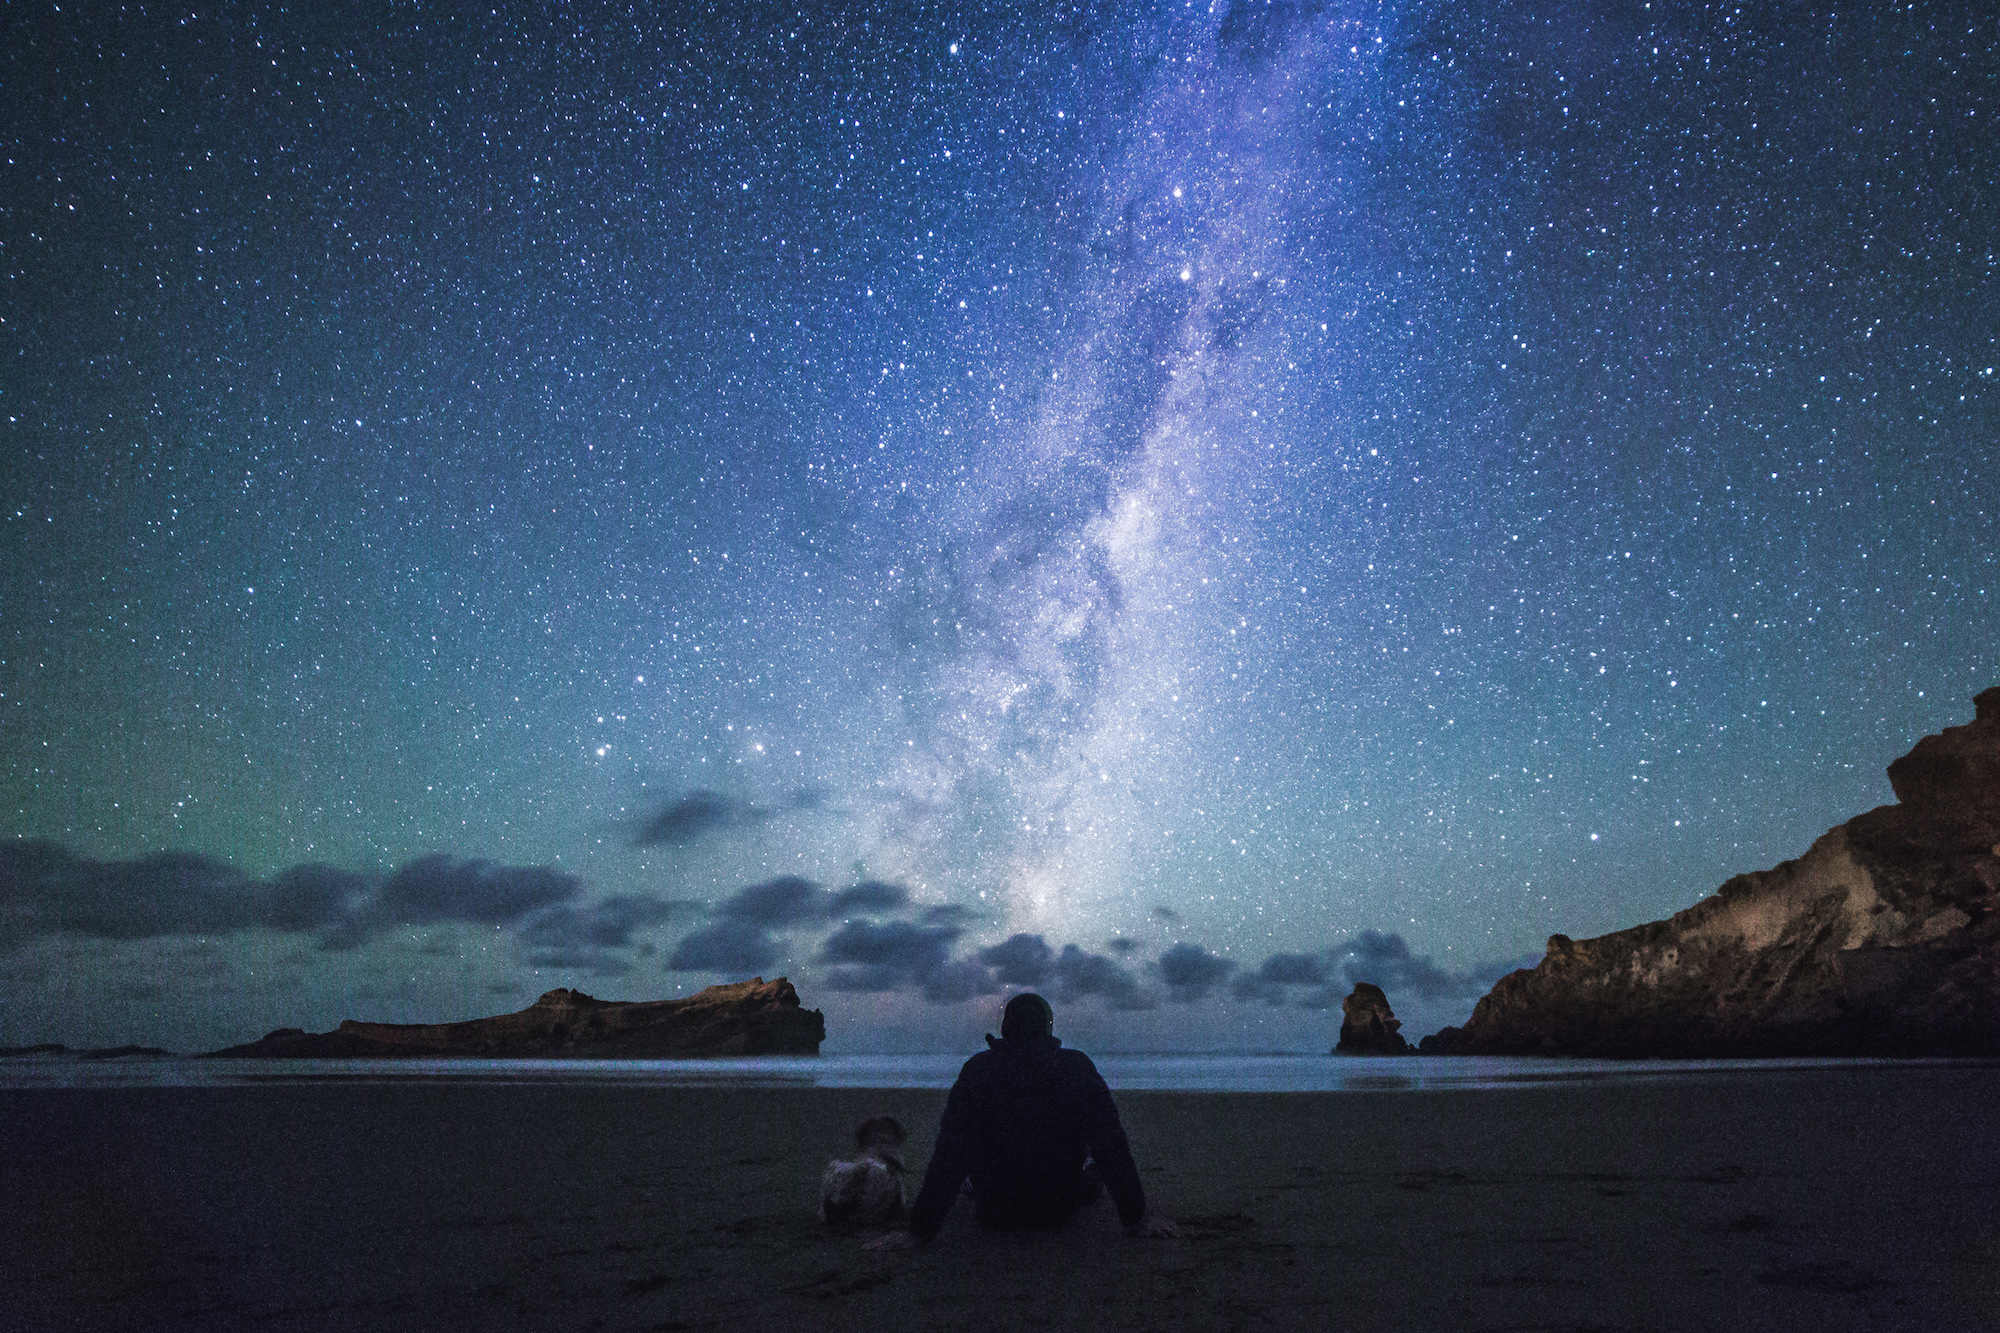 Celebrate the Māori New Year with this live-stream of stars in New Zealand